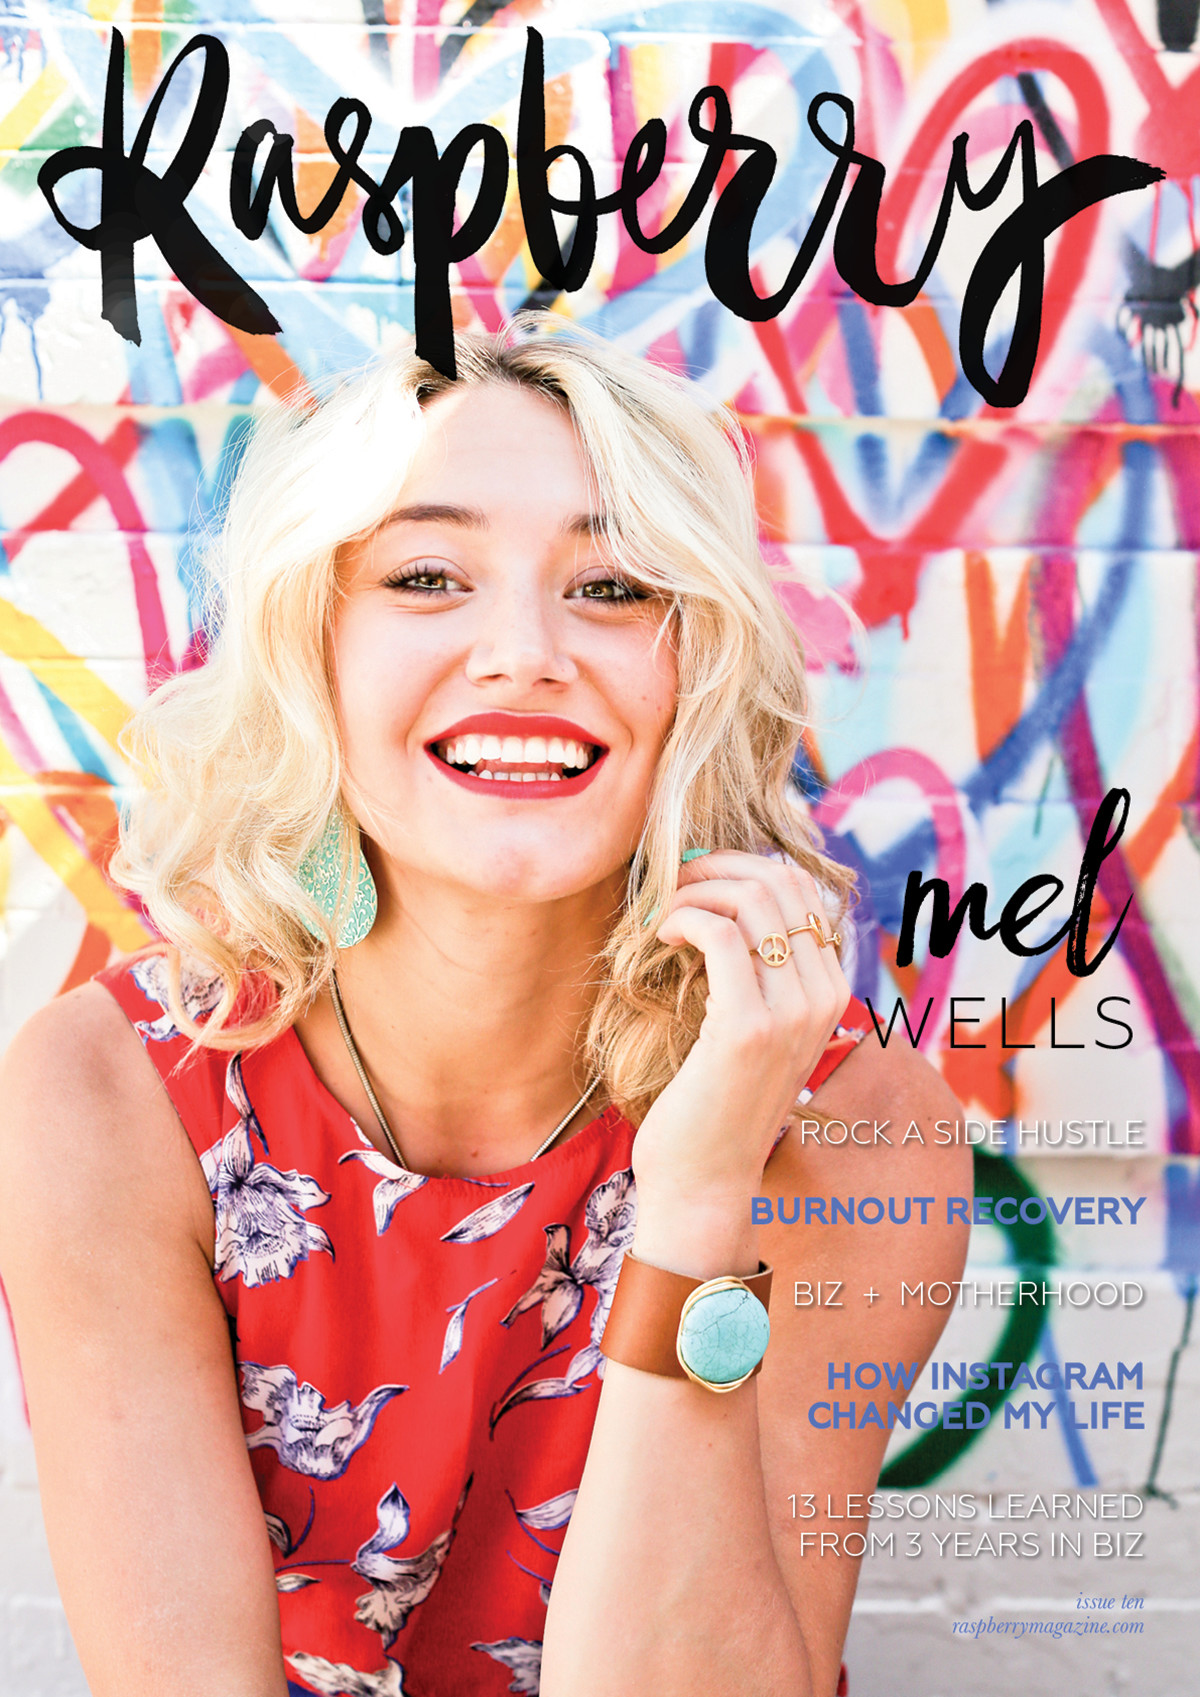 ISSUE TEN  ( read online here )   COVER STORY // An interview with Mel Wells, coach and Hay House author who empowers modern day women to stop dieting for good, by adopting a healthy, loving relationship with food, and a brand new lifestyle that reflects this.   13 lessons learned in 3 years of growing a business  by Lauren Hong   4 keys to getting your writing groove back  by Kris Emery   The side hustle: how to run a business after hours  by Dannie L Fountain   Finding balance in business and motherhood  by Heather Mudry   Feeling lonely? Tips for the solo biz woman  by Tara Caetano   Manage your calendar like a celebrity personal assistant  by Courtney Daniel   How I bounced back from burnout  by Karina Stephens   8 key ways to grow your health coaching business  by Shelley Davidescu   How Instagram changed my life  by Madison Rosenberger   Fight the PJs temptation: get dressed to improve productivity  by Gemma Williams   8 steps to creating your online course  by Tracey Meyer